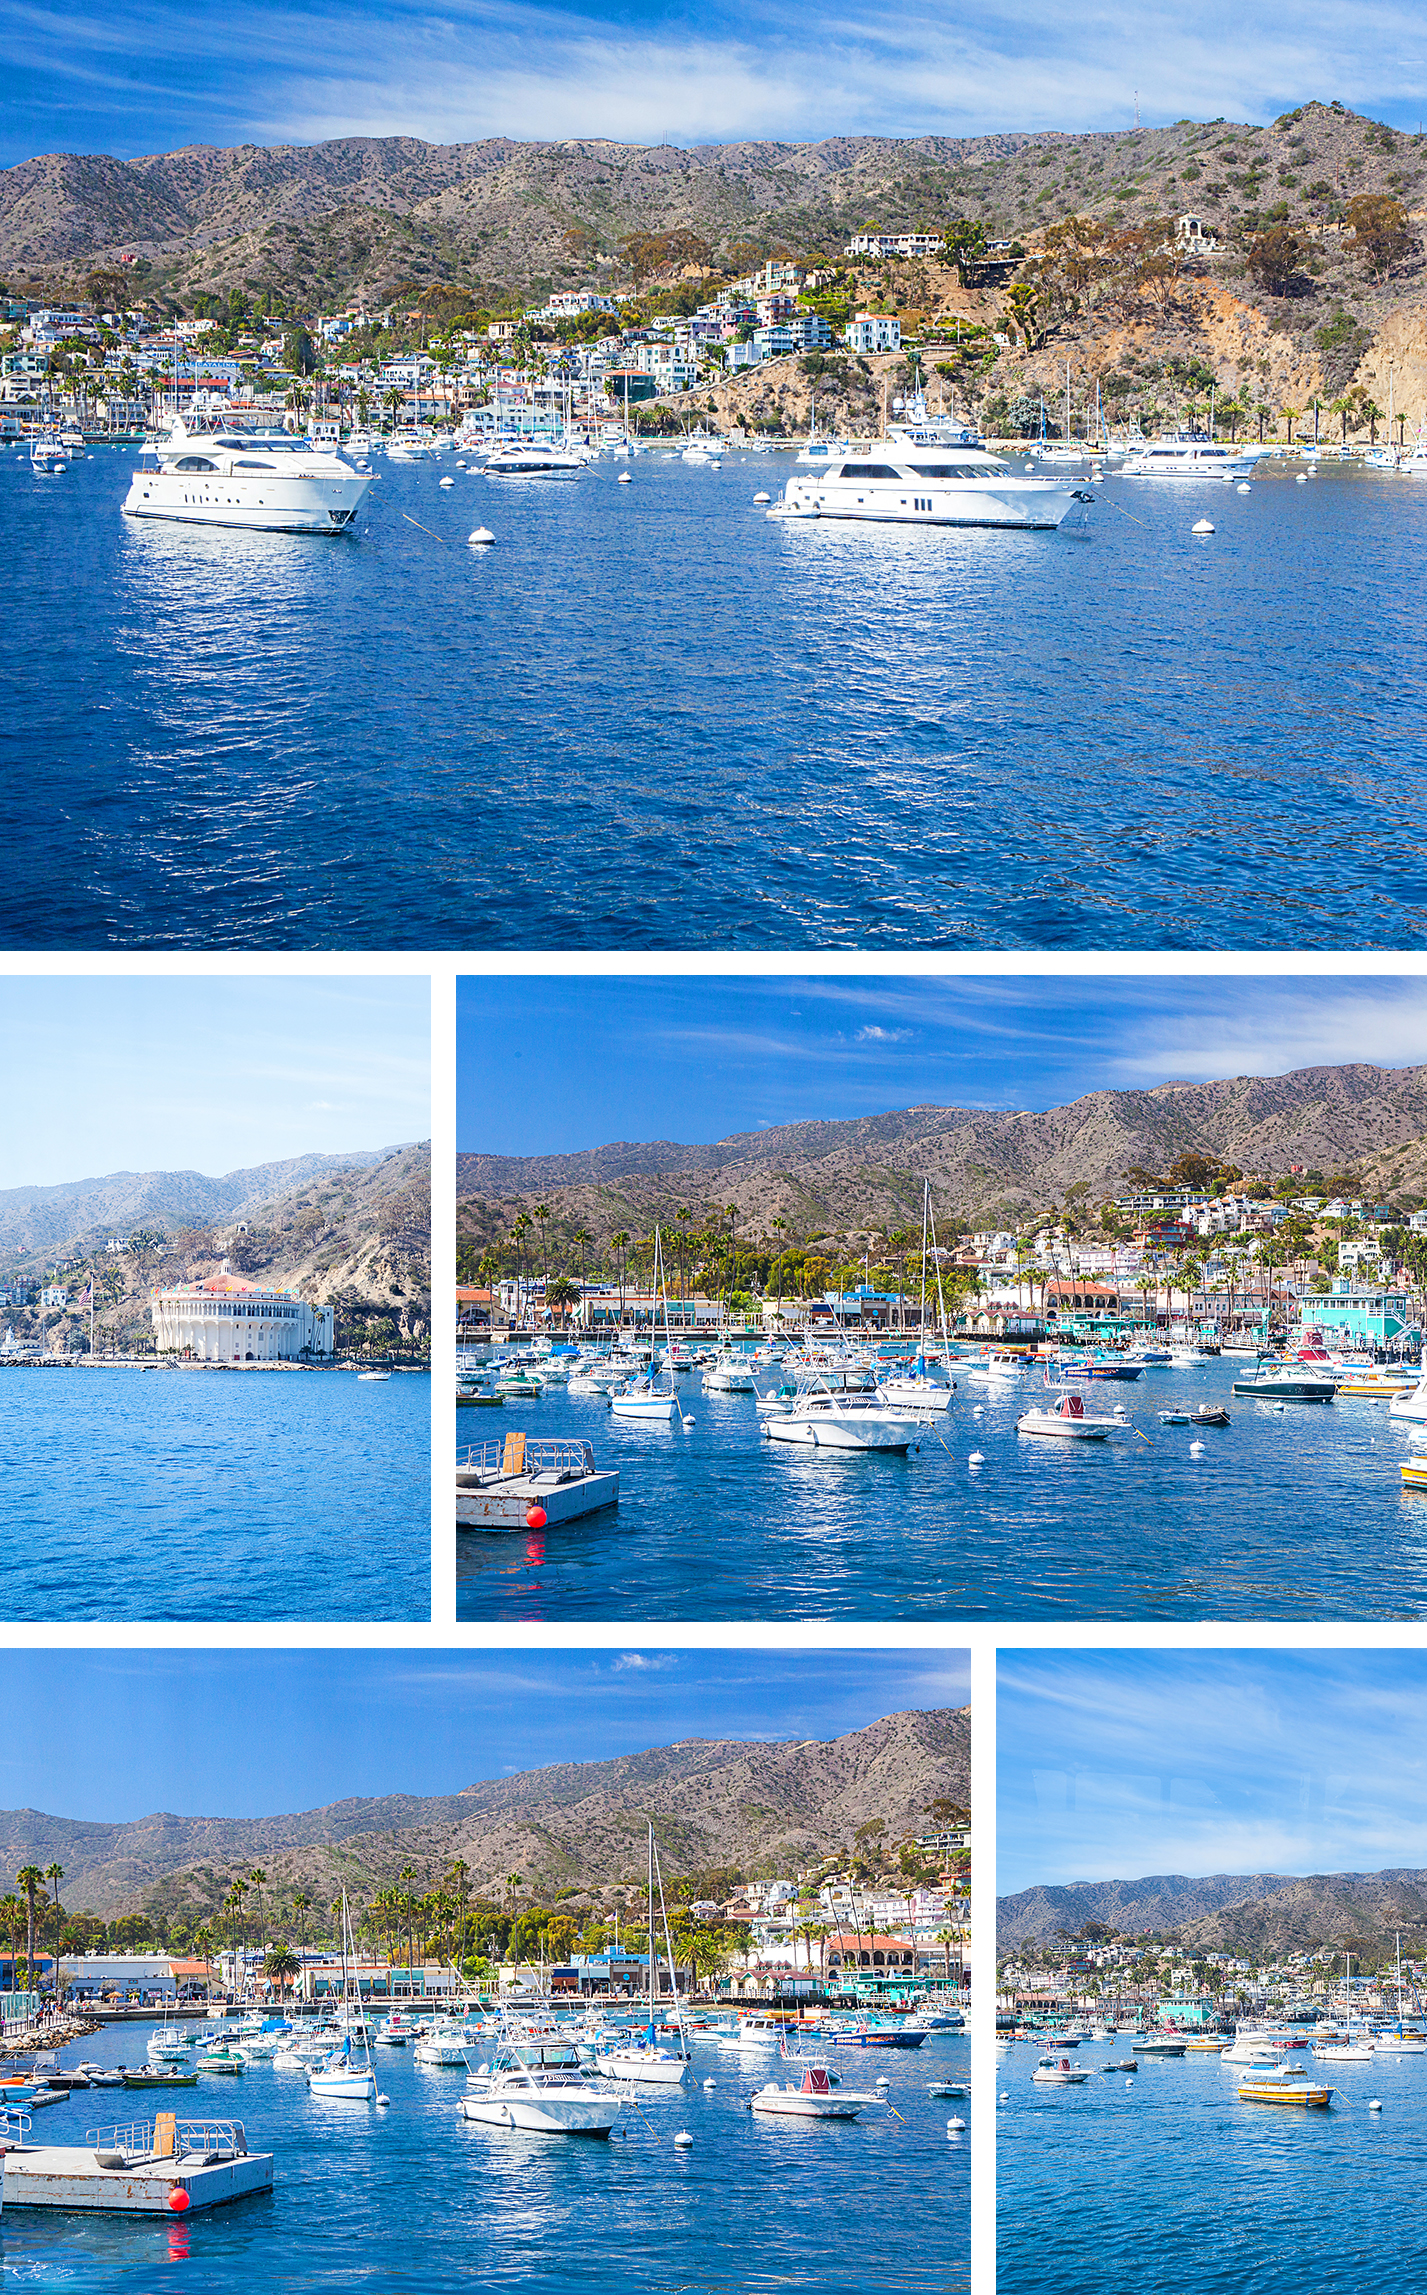 catalina island, catalina express, taste of catalina food tour, avalon